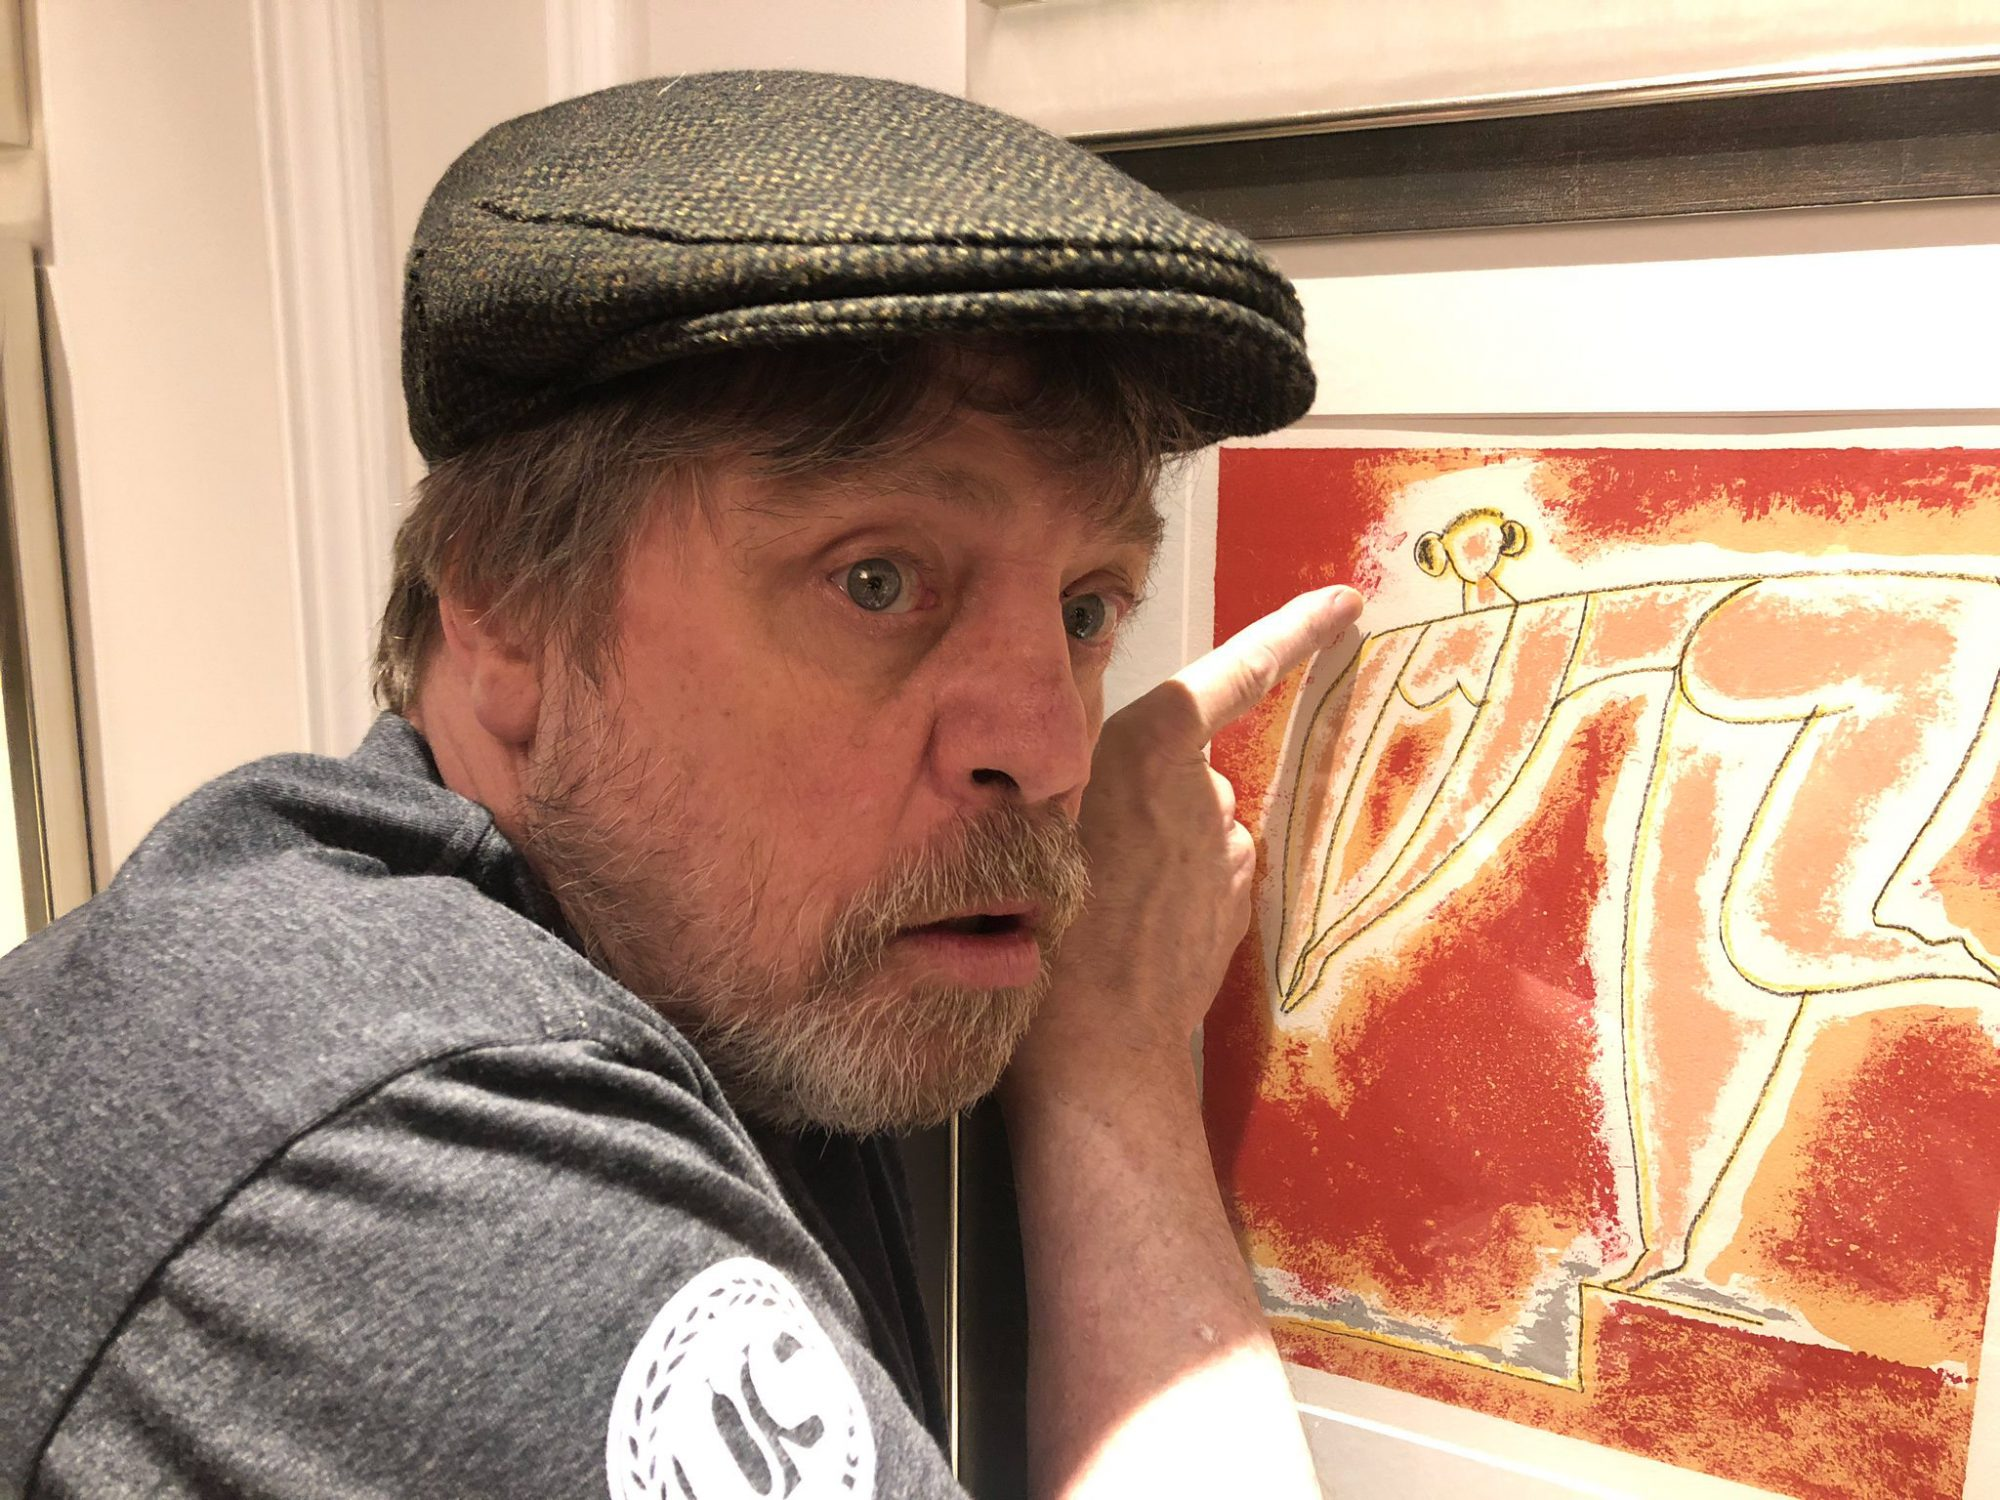 https://twitter.com/HamillHimself/status/976344859316404224Mark Hamill/Twitter